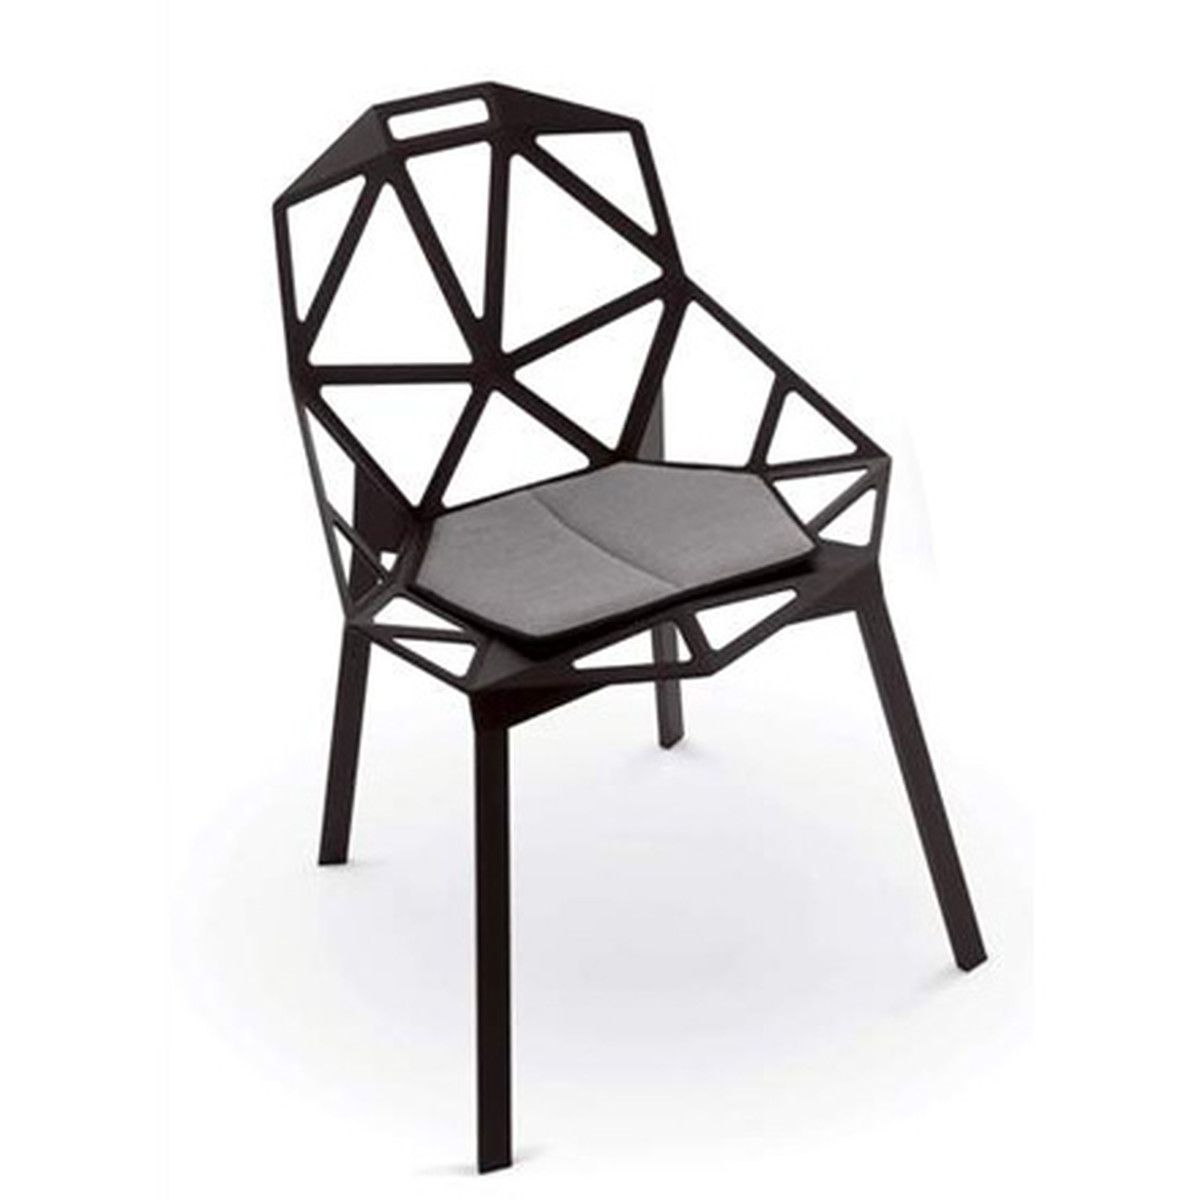 Konstantin grcic bar stool one stool design stools - Find This Pin And More On Chair Ideas Chair One Von Konstantin Grcic